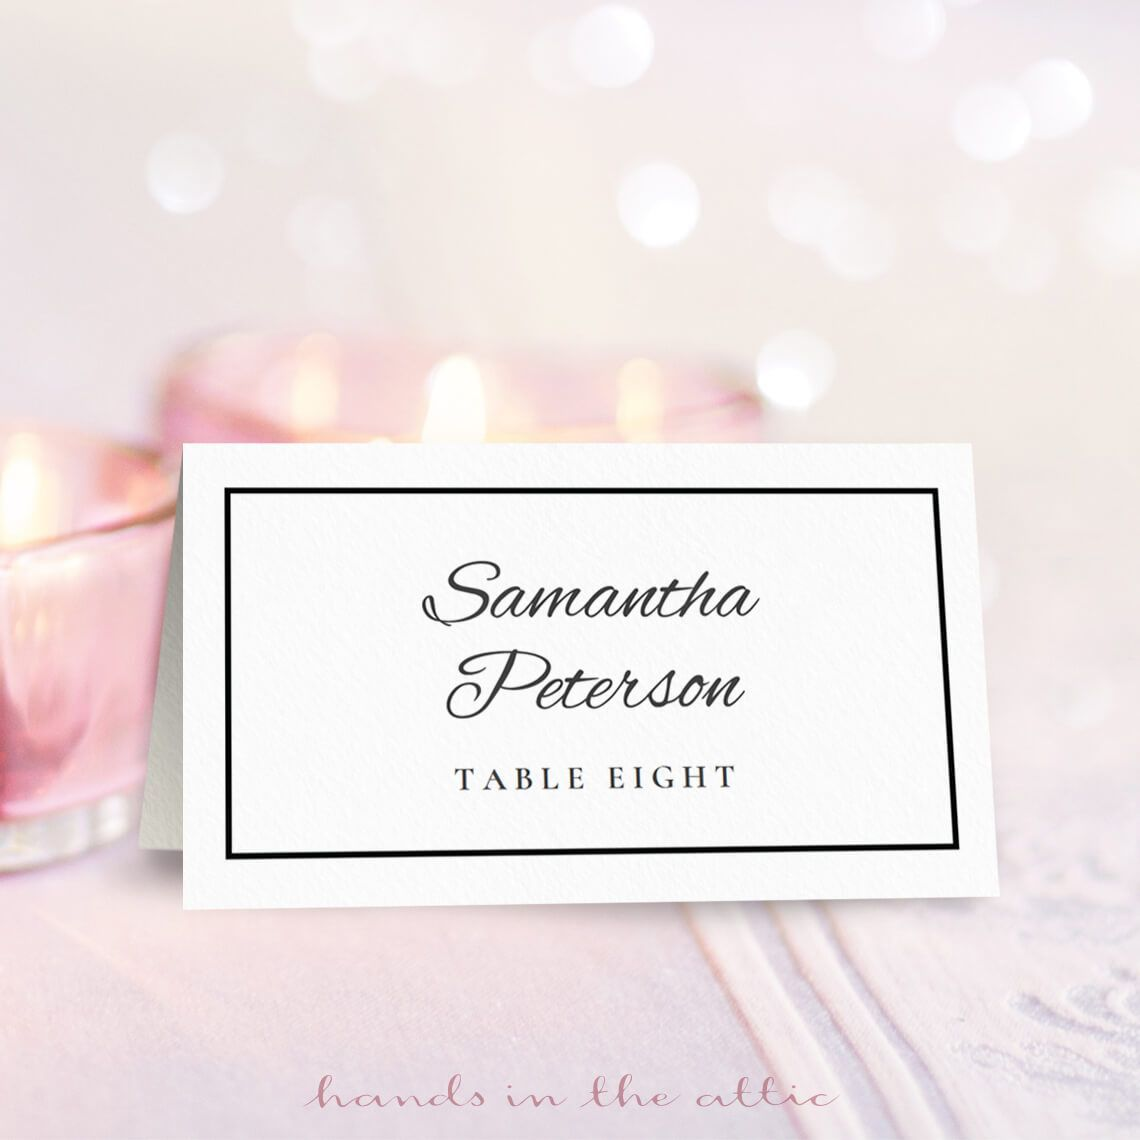 Wedding Place Card Template Free On Handsintheattic For Free Place Card Templates Downl Place Card Template Free Place Card Template Card Templates Printable